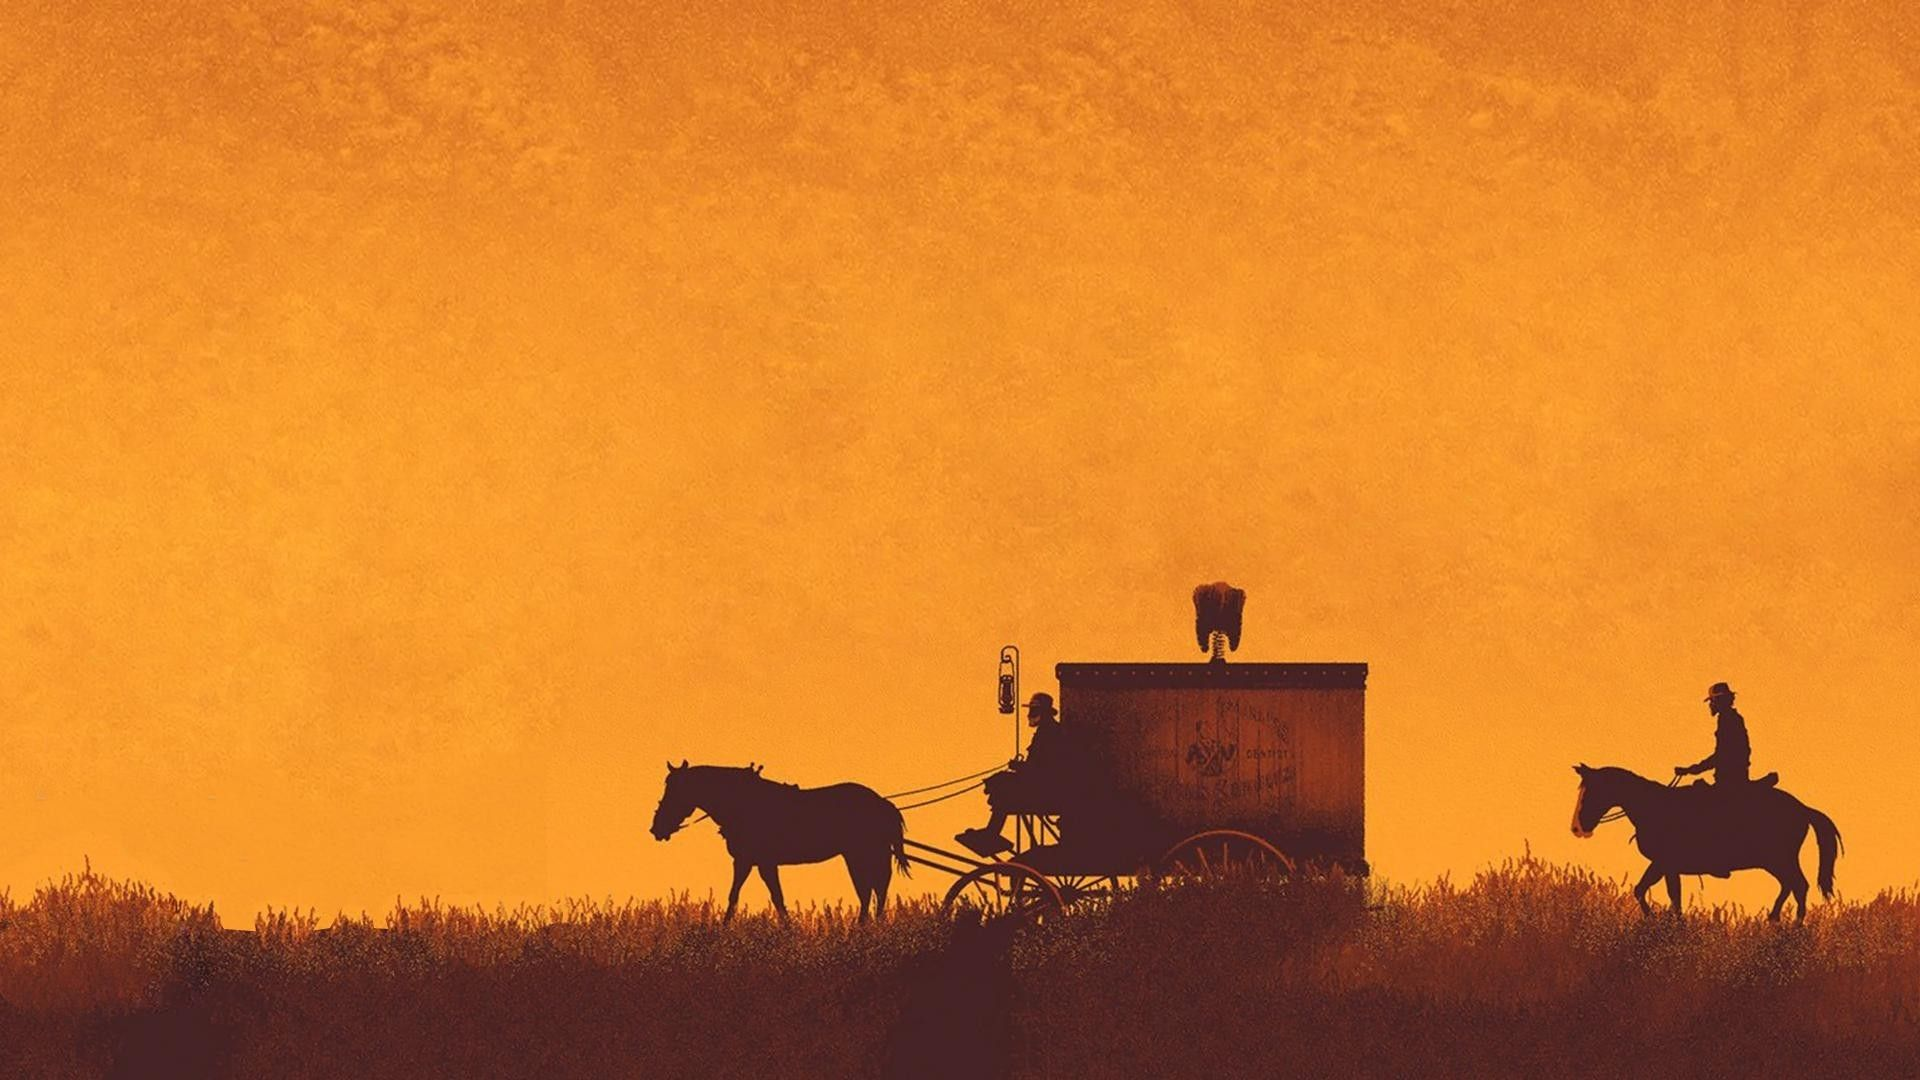 django unchained artwork wallpaper 57173